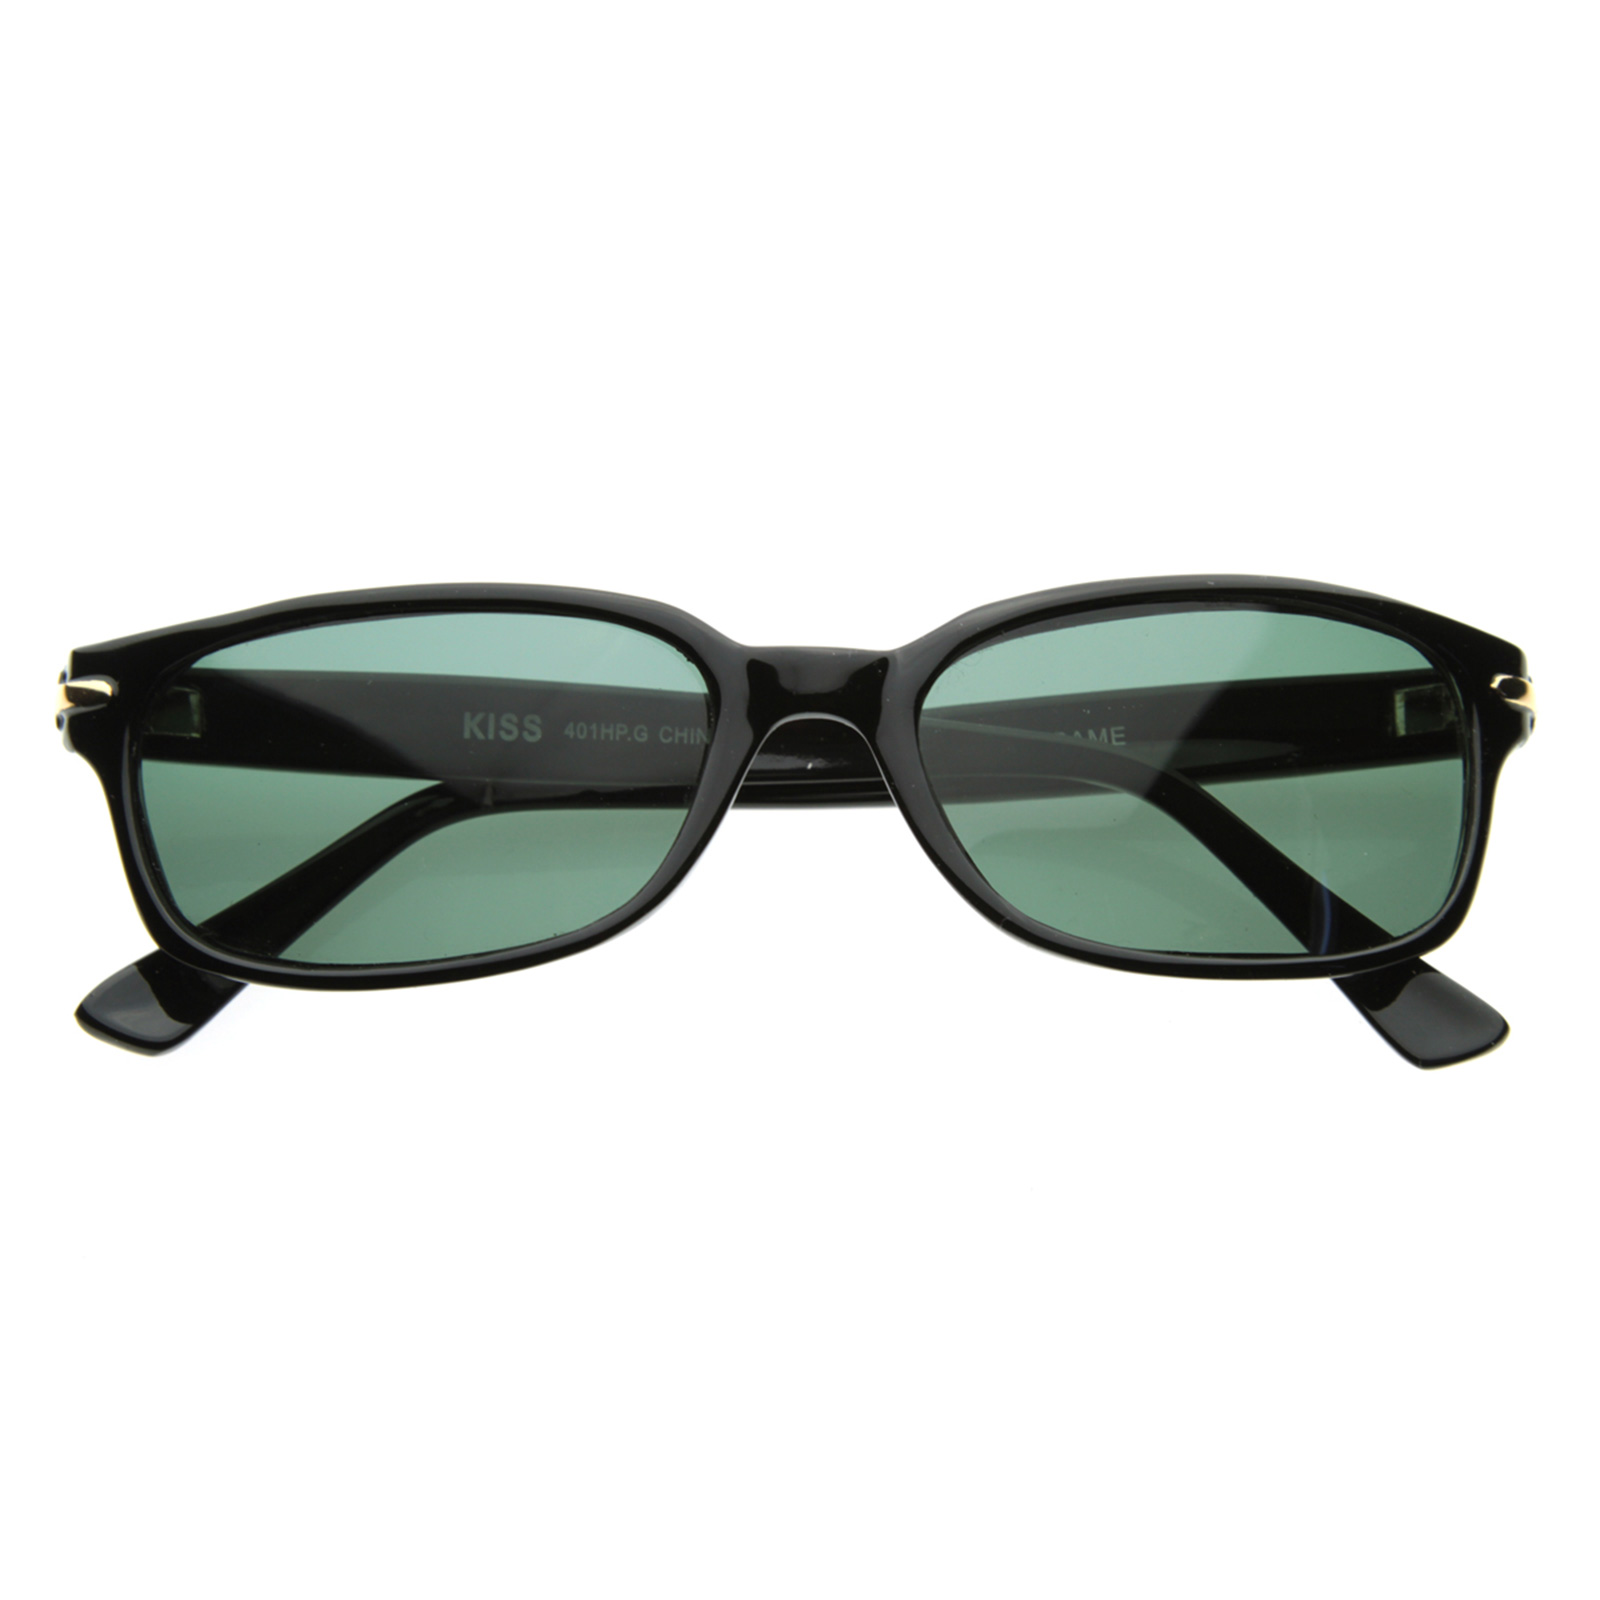 Thin Framed Fashion Glasses : Modified Rectangular Horned Sunglasses eBay